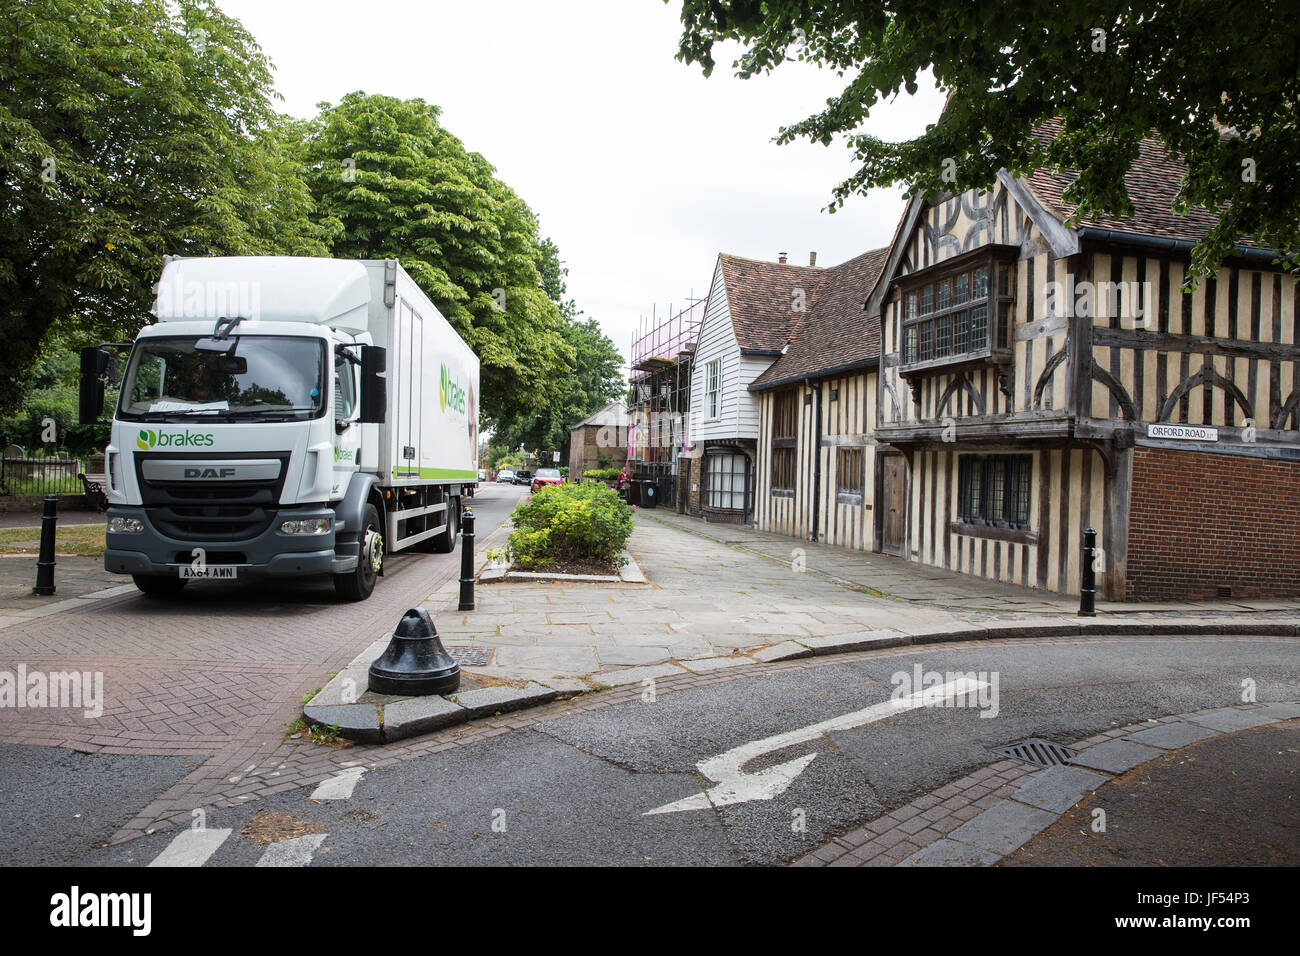 London, UK. 29th June, 2017. A large vehicle passes along Church Lane, the last remaining 'rat run' in Walthamstow - Stock Image